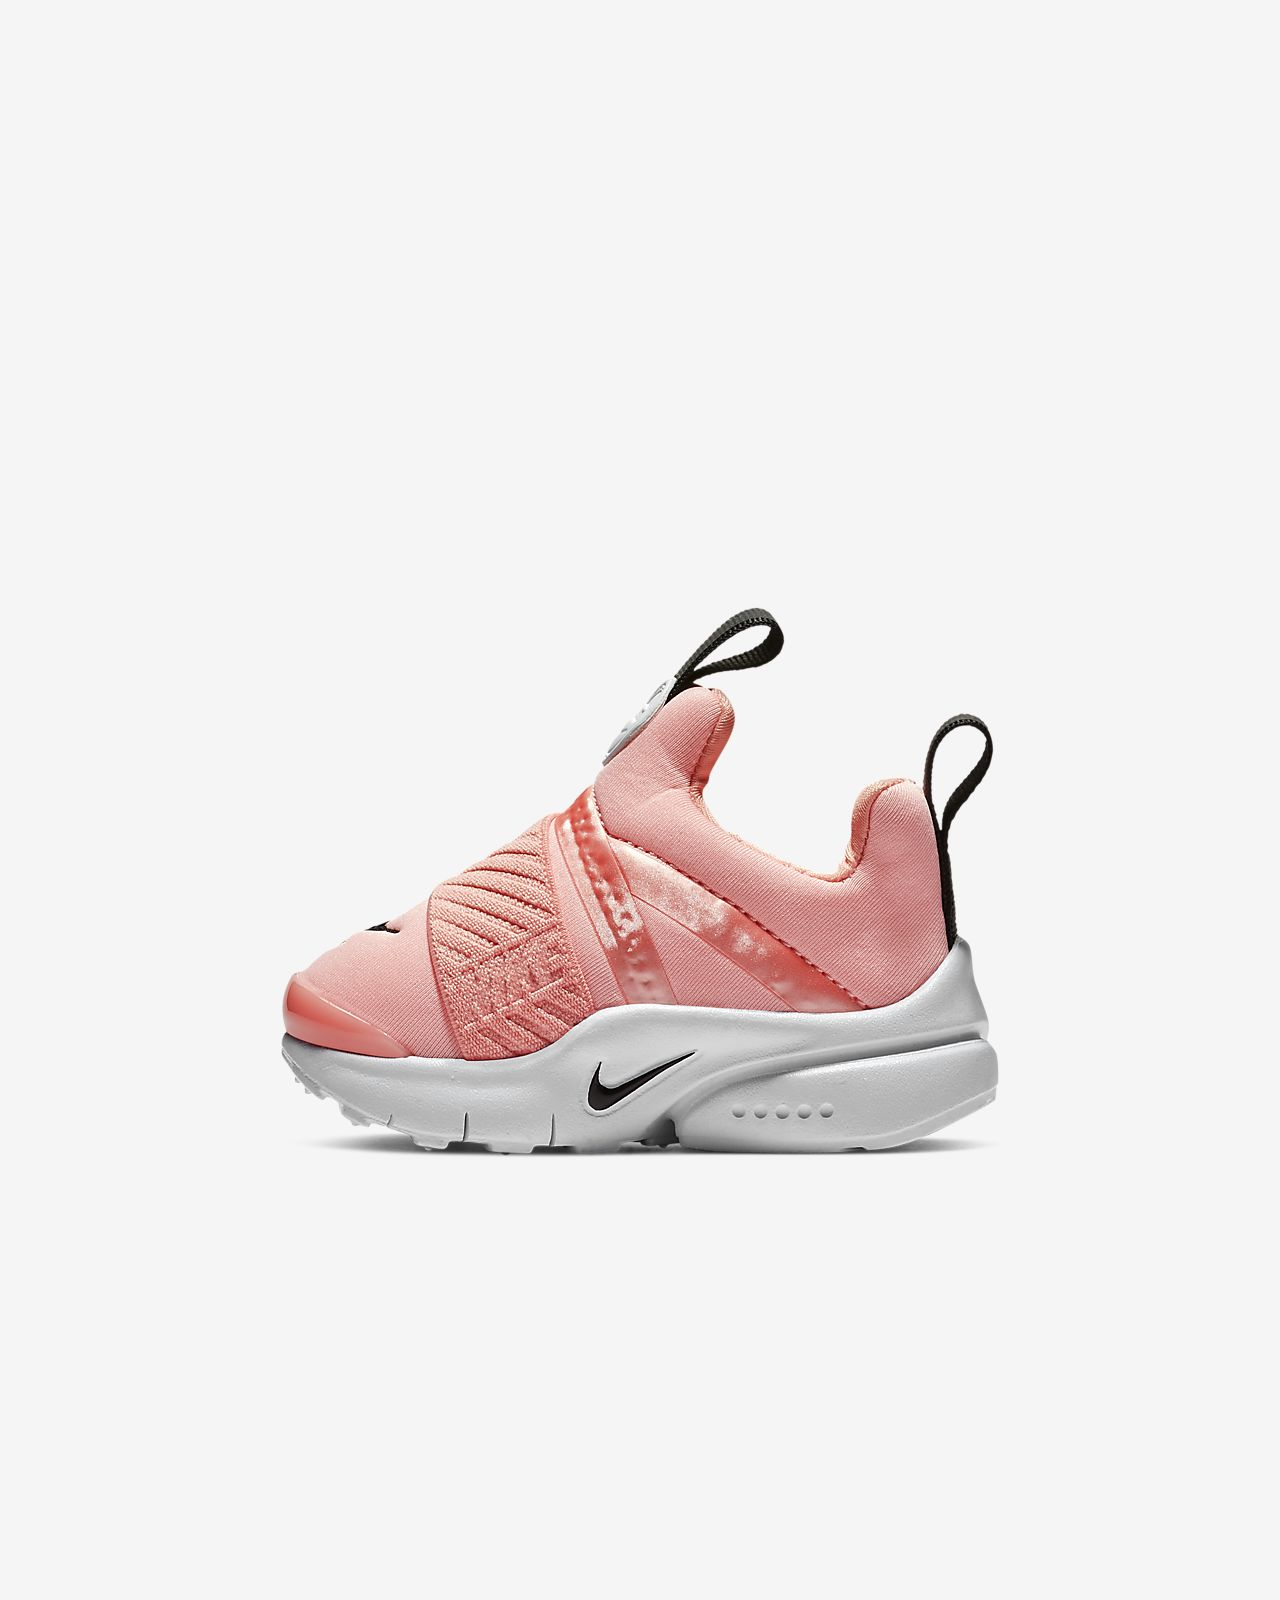 outlet store 4e3f9 0b802 Infant Toddler Shoe. Nike Presto Extreme VDAY